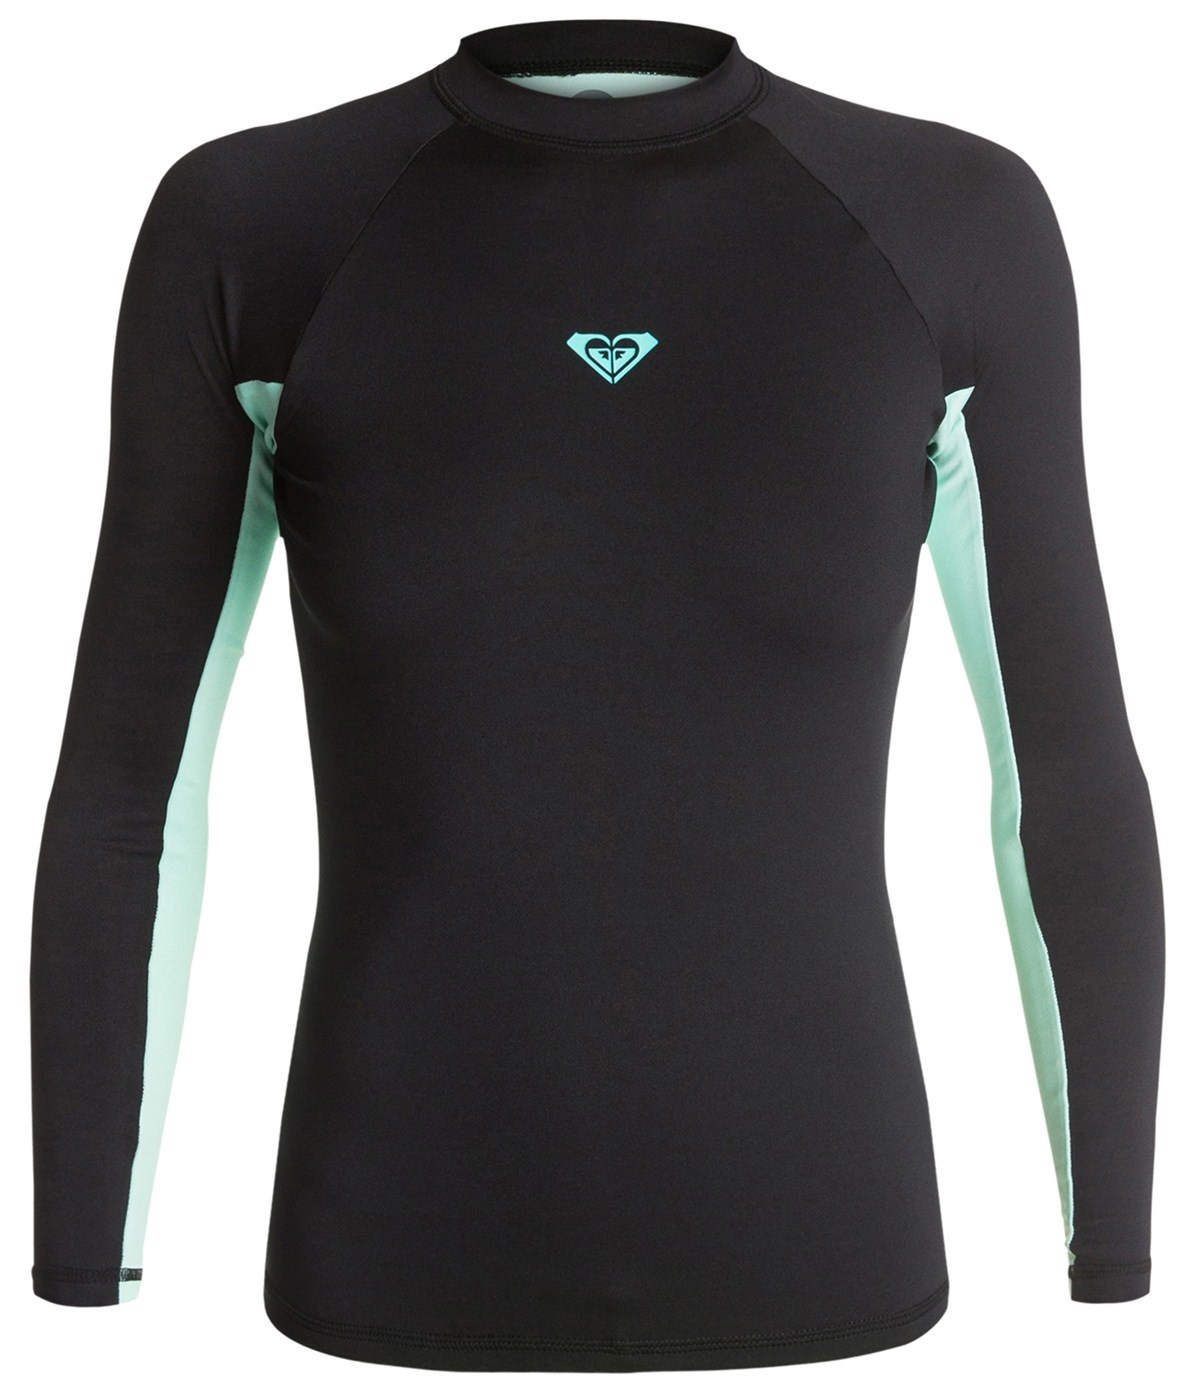 Roxy XY Long Sleeve Women's Rashguard - Black/Light Green